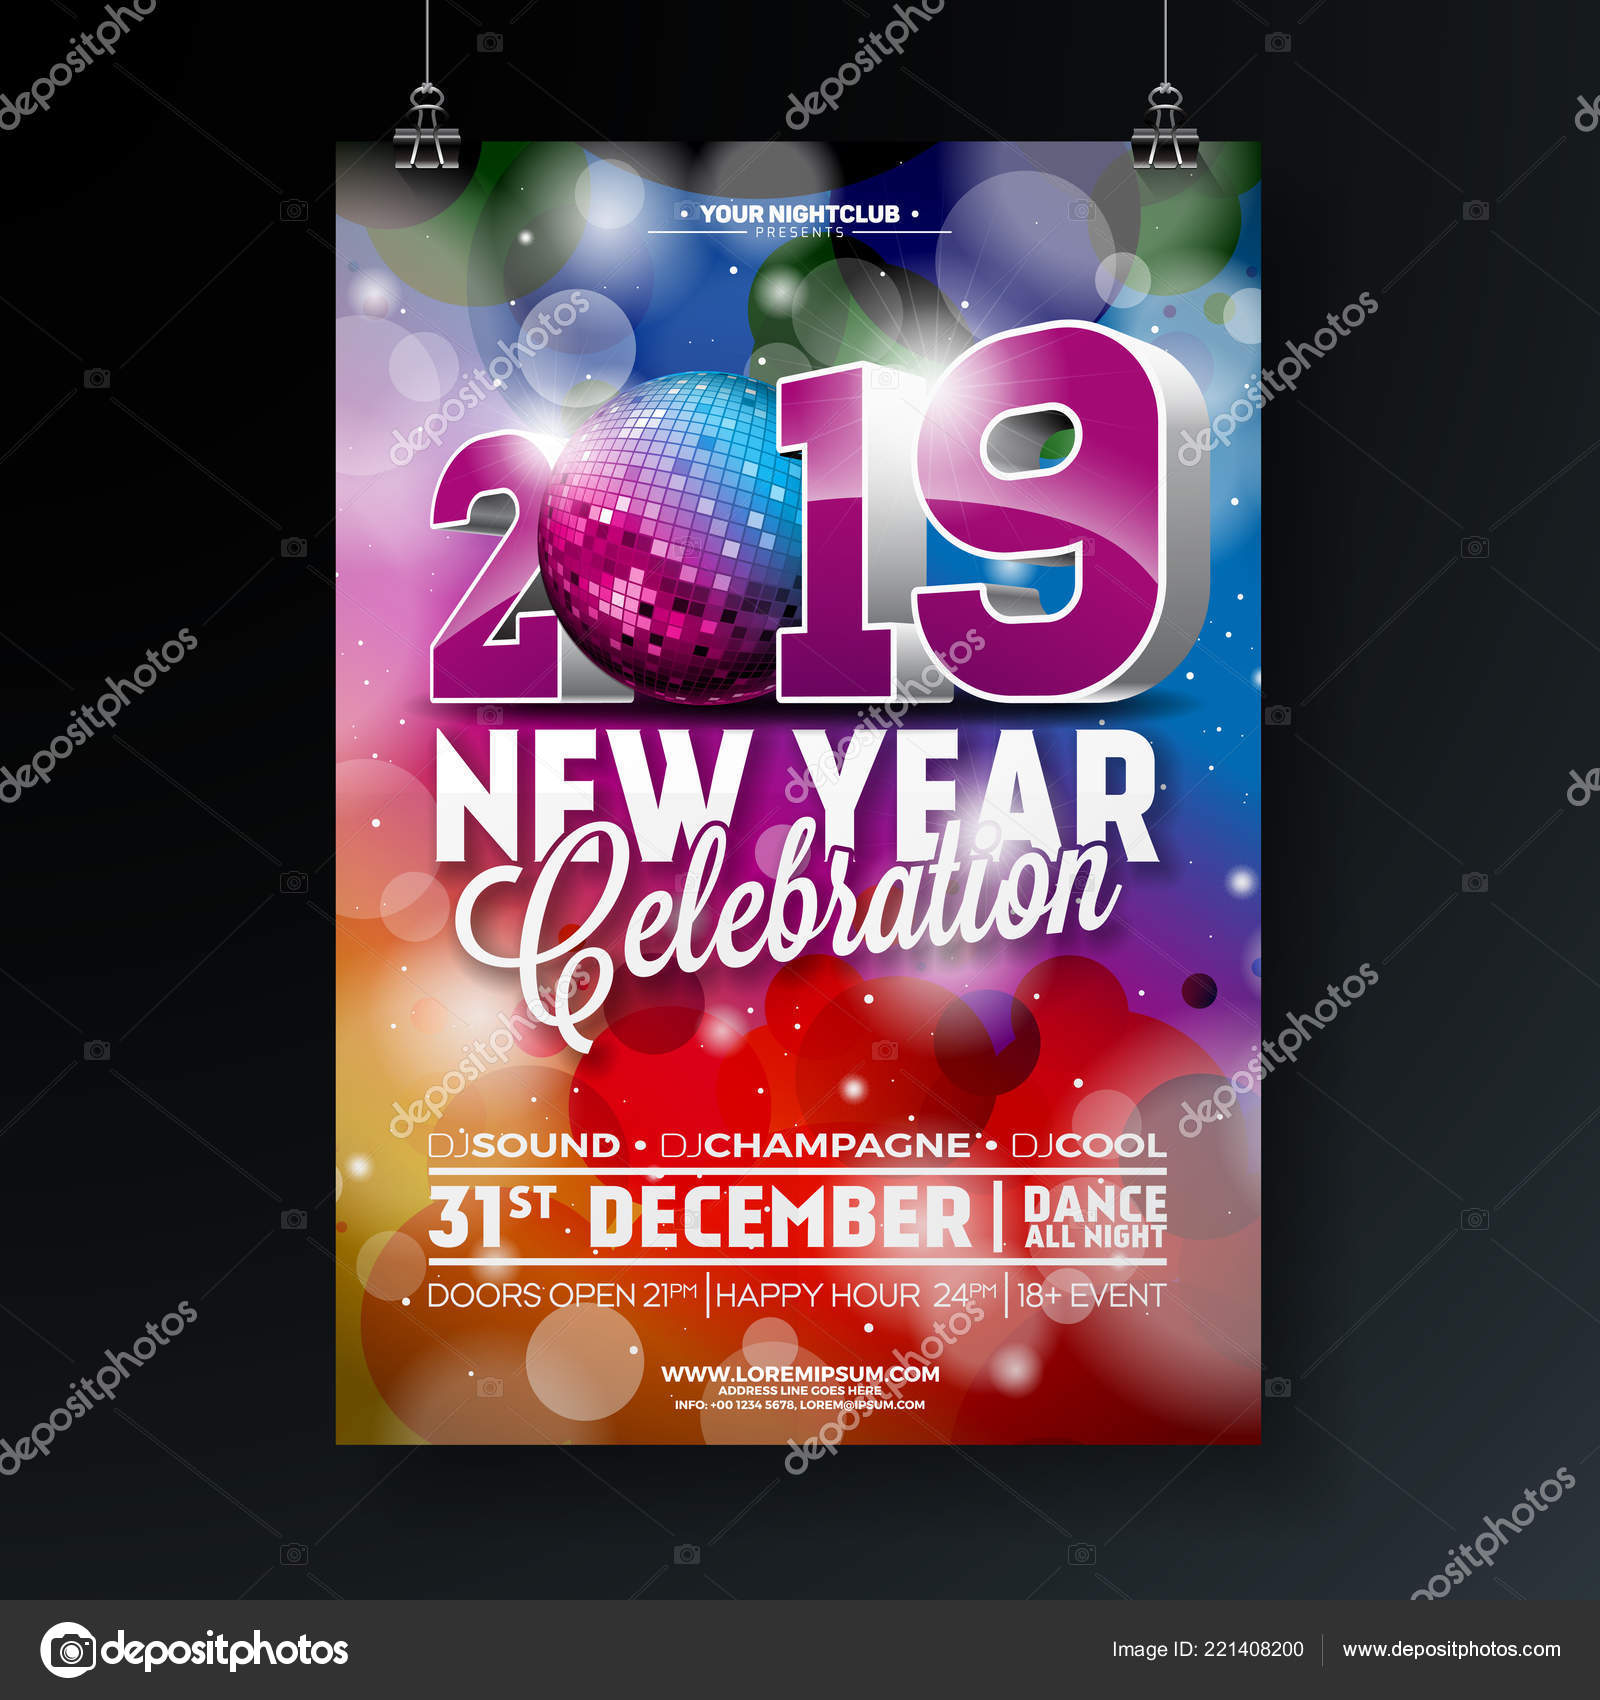 new year party celebration poster template illustration with 3d 2019 number and disco ball on shiny